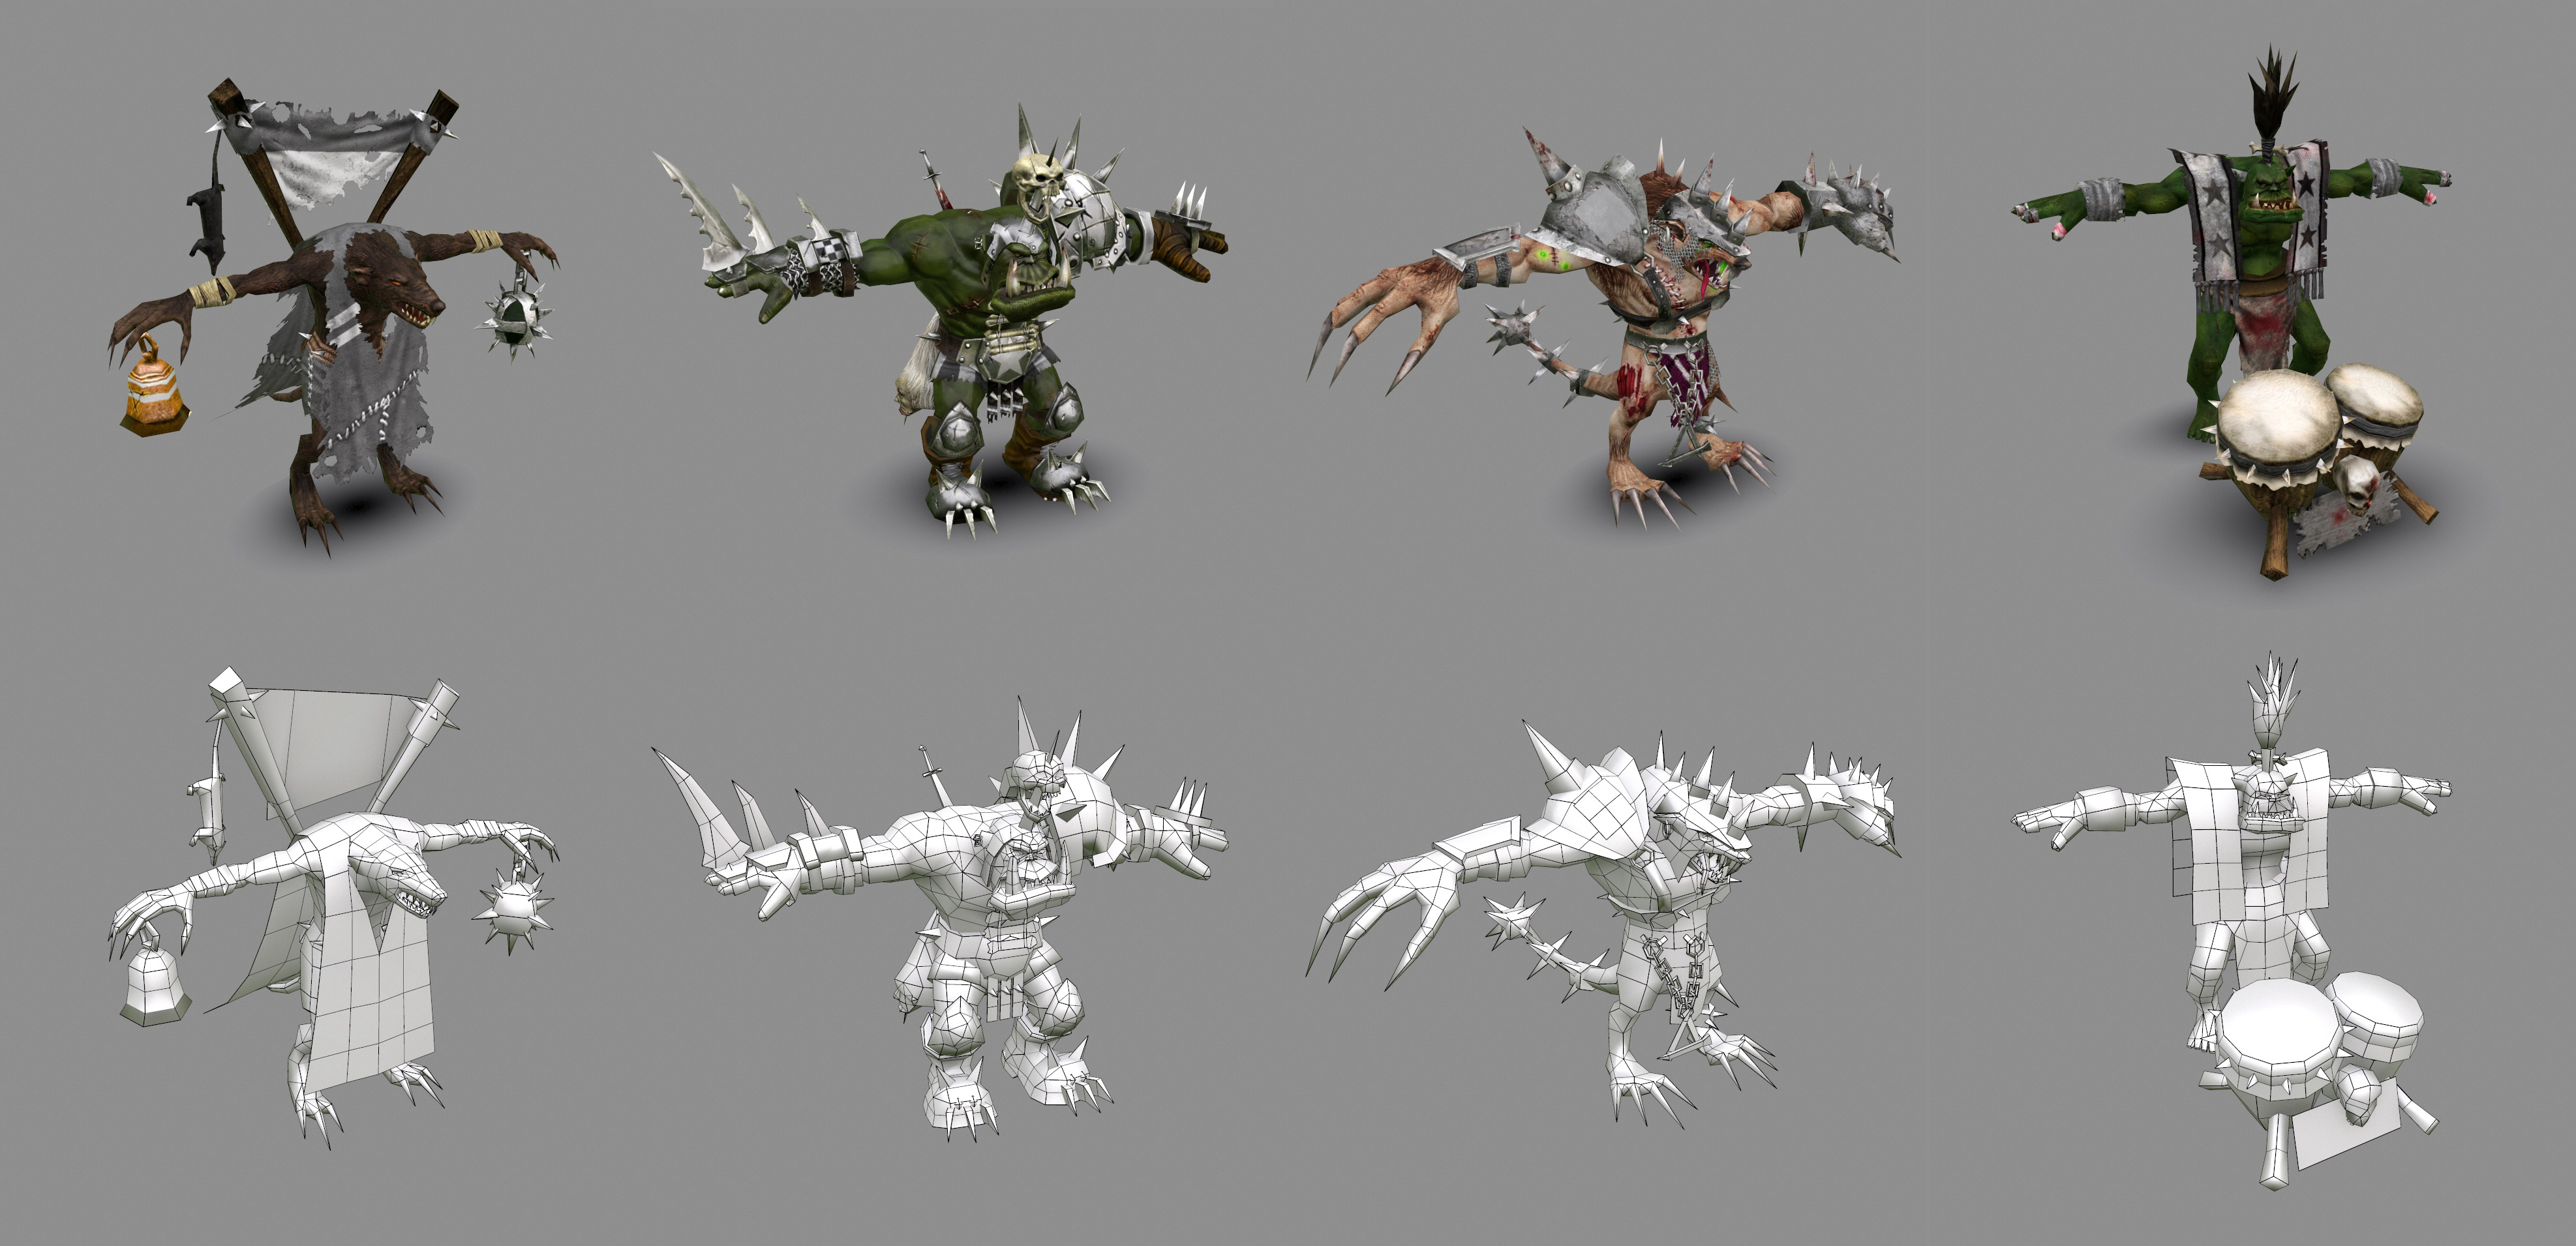 2014_BloodBowl_F.Beudin_Skaven-Cheerleader.Skaven-Cheerleader.Skavens-Headsplitter.Orc-Cheerleader